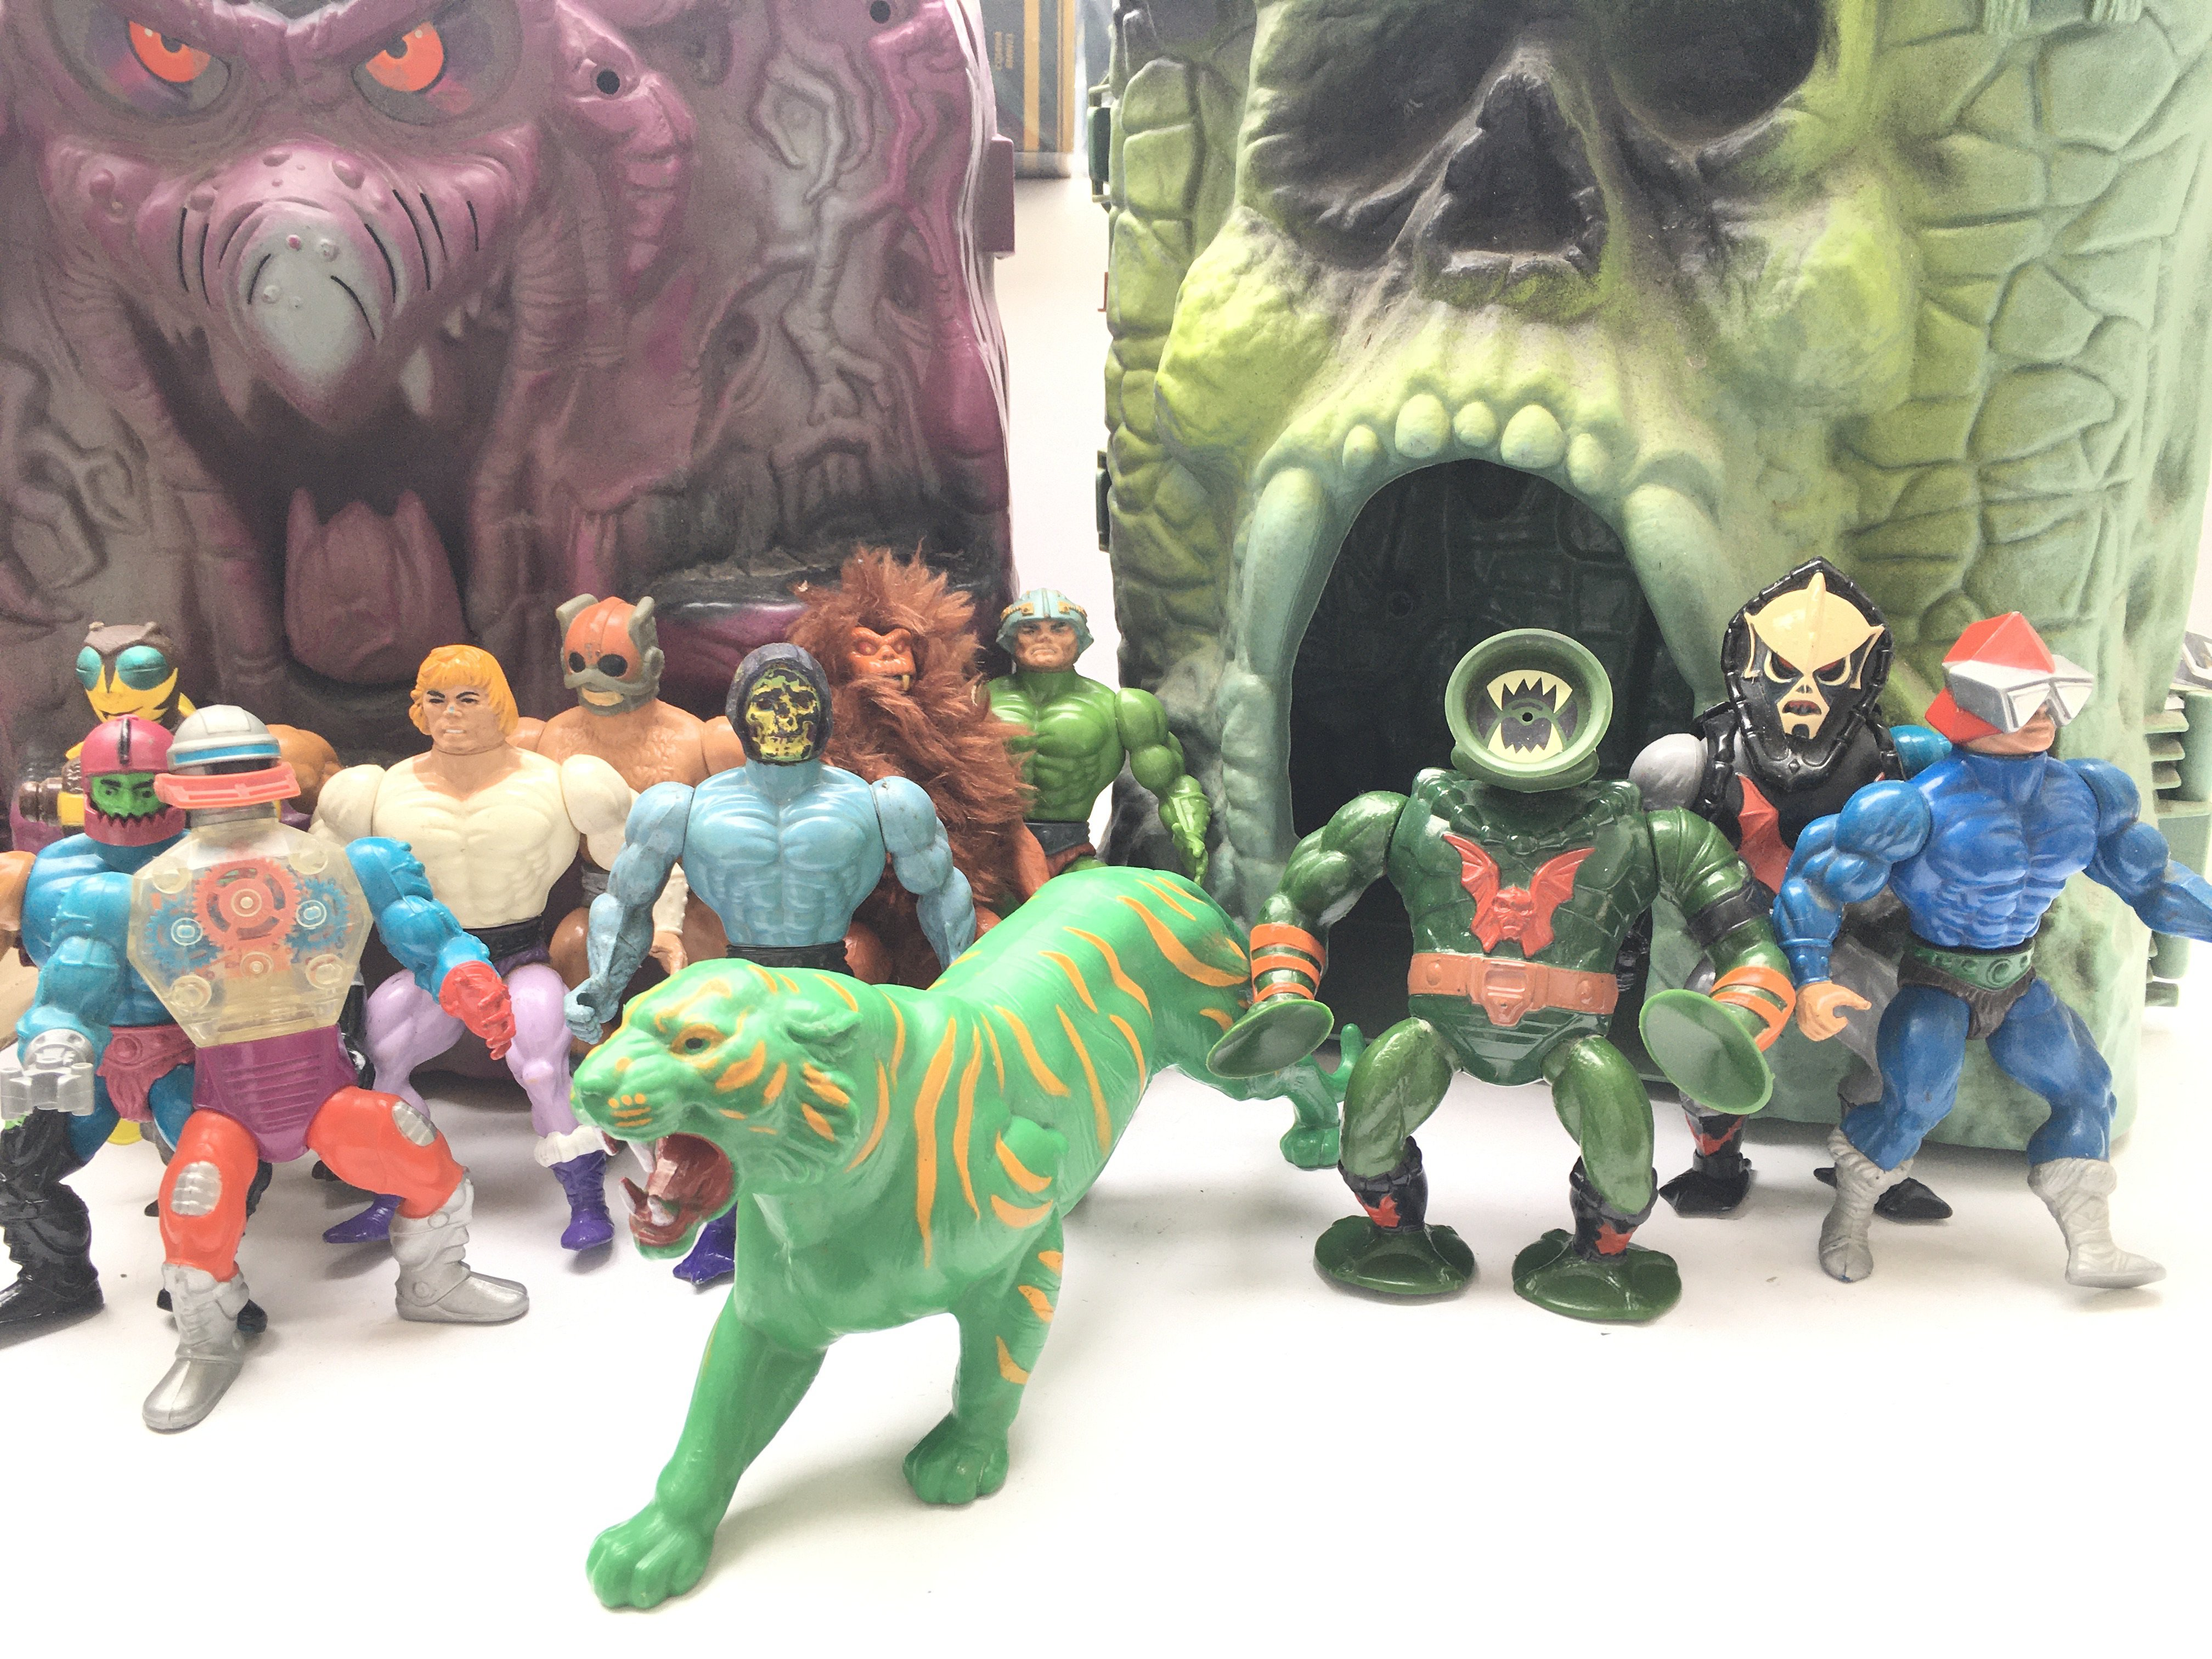 A Collection of Playworn He-Man Figures. Craft and